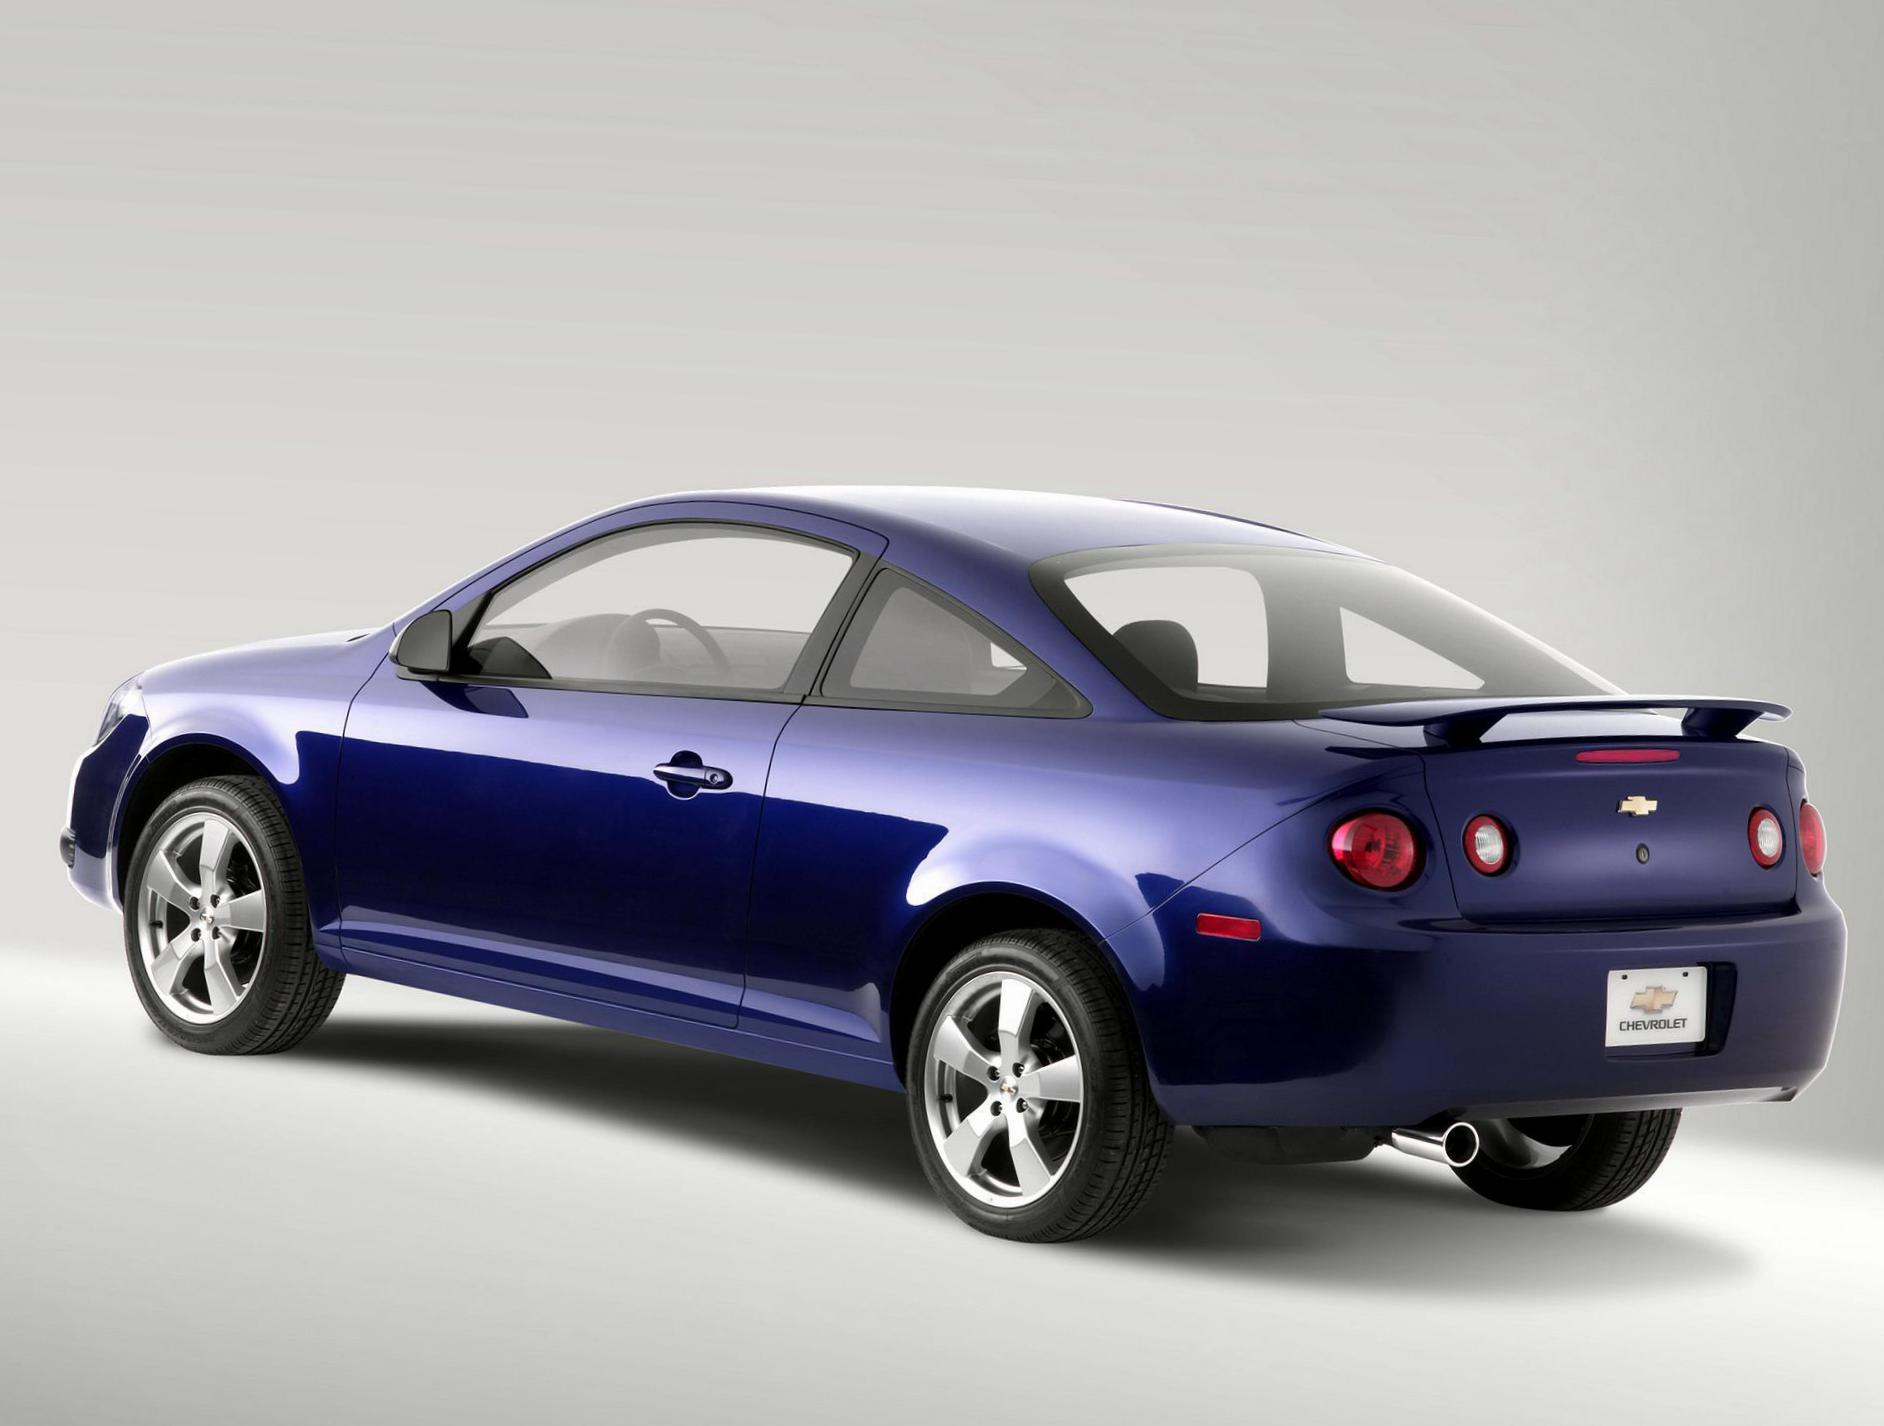 Cobalt Coupe Chevrolet new 2009